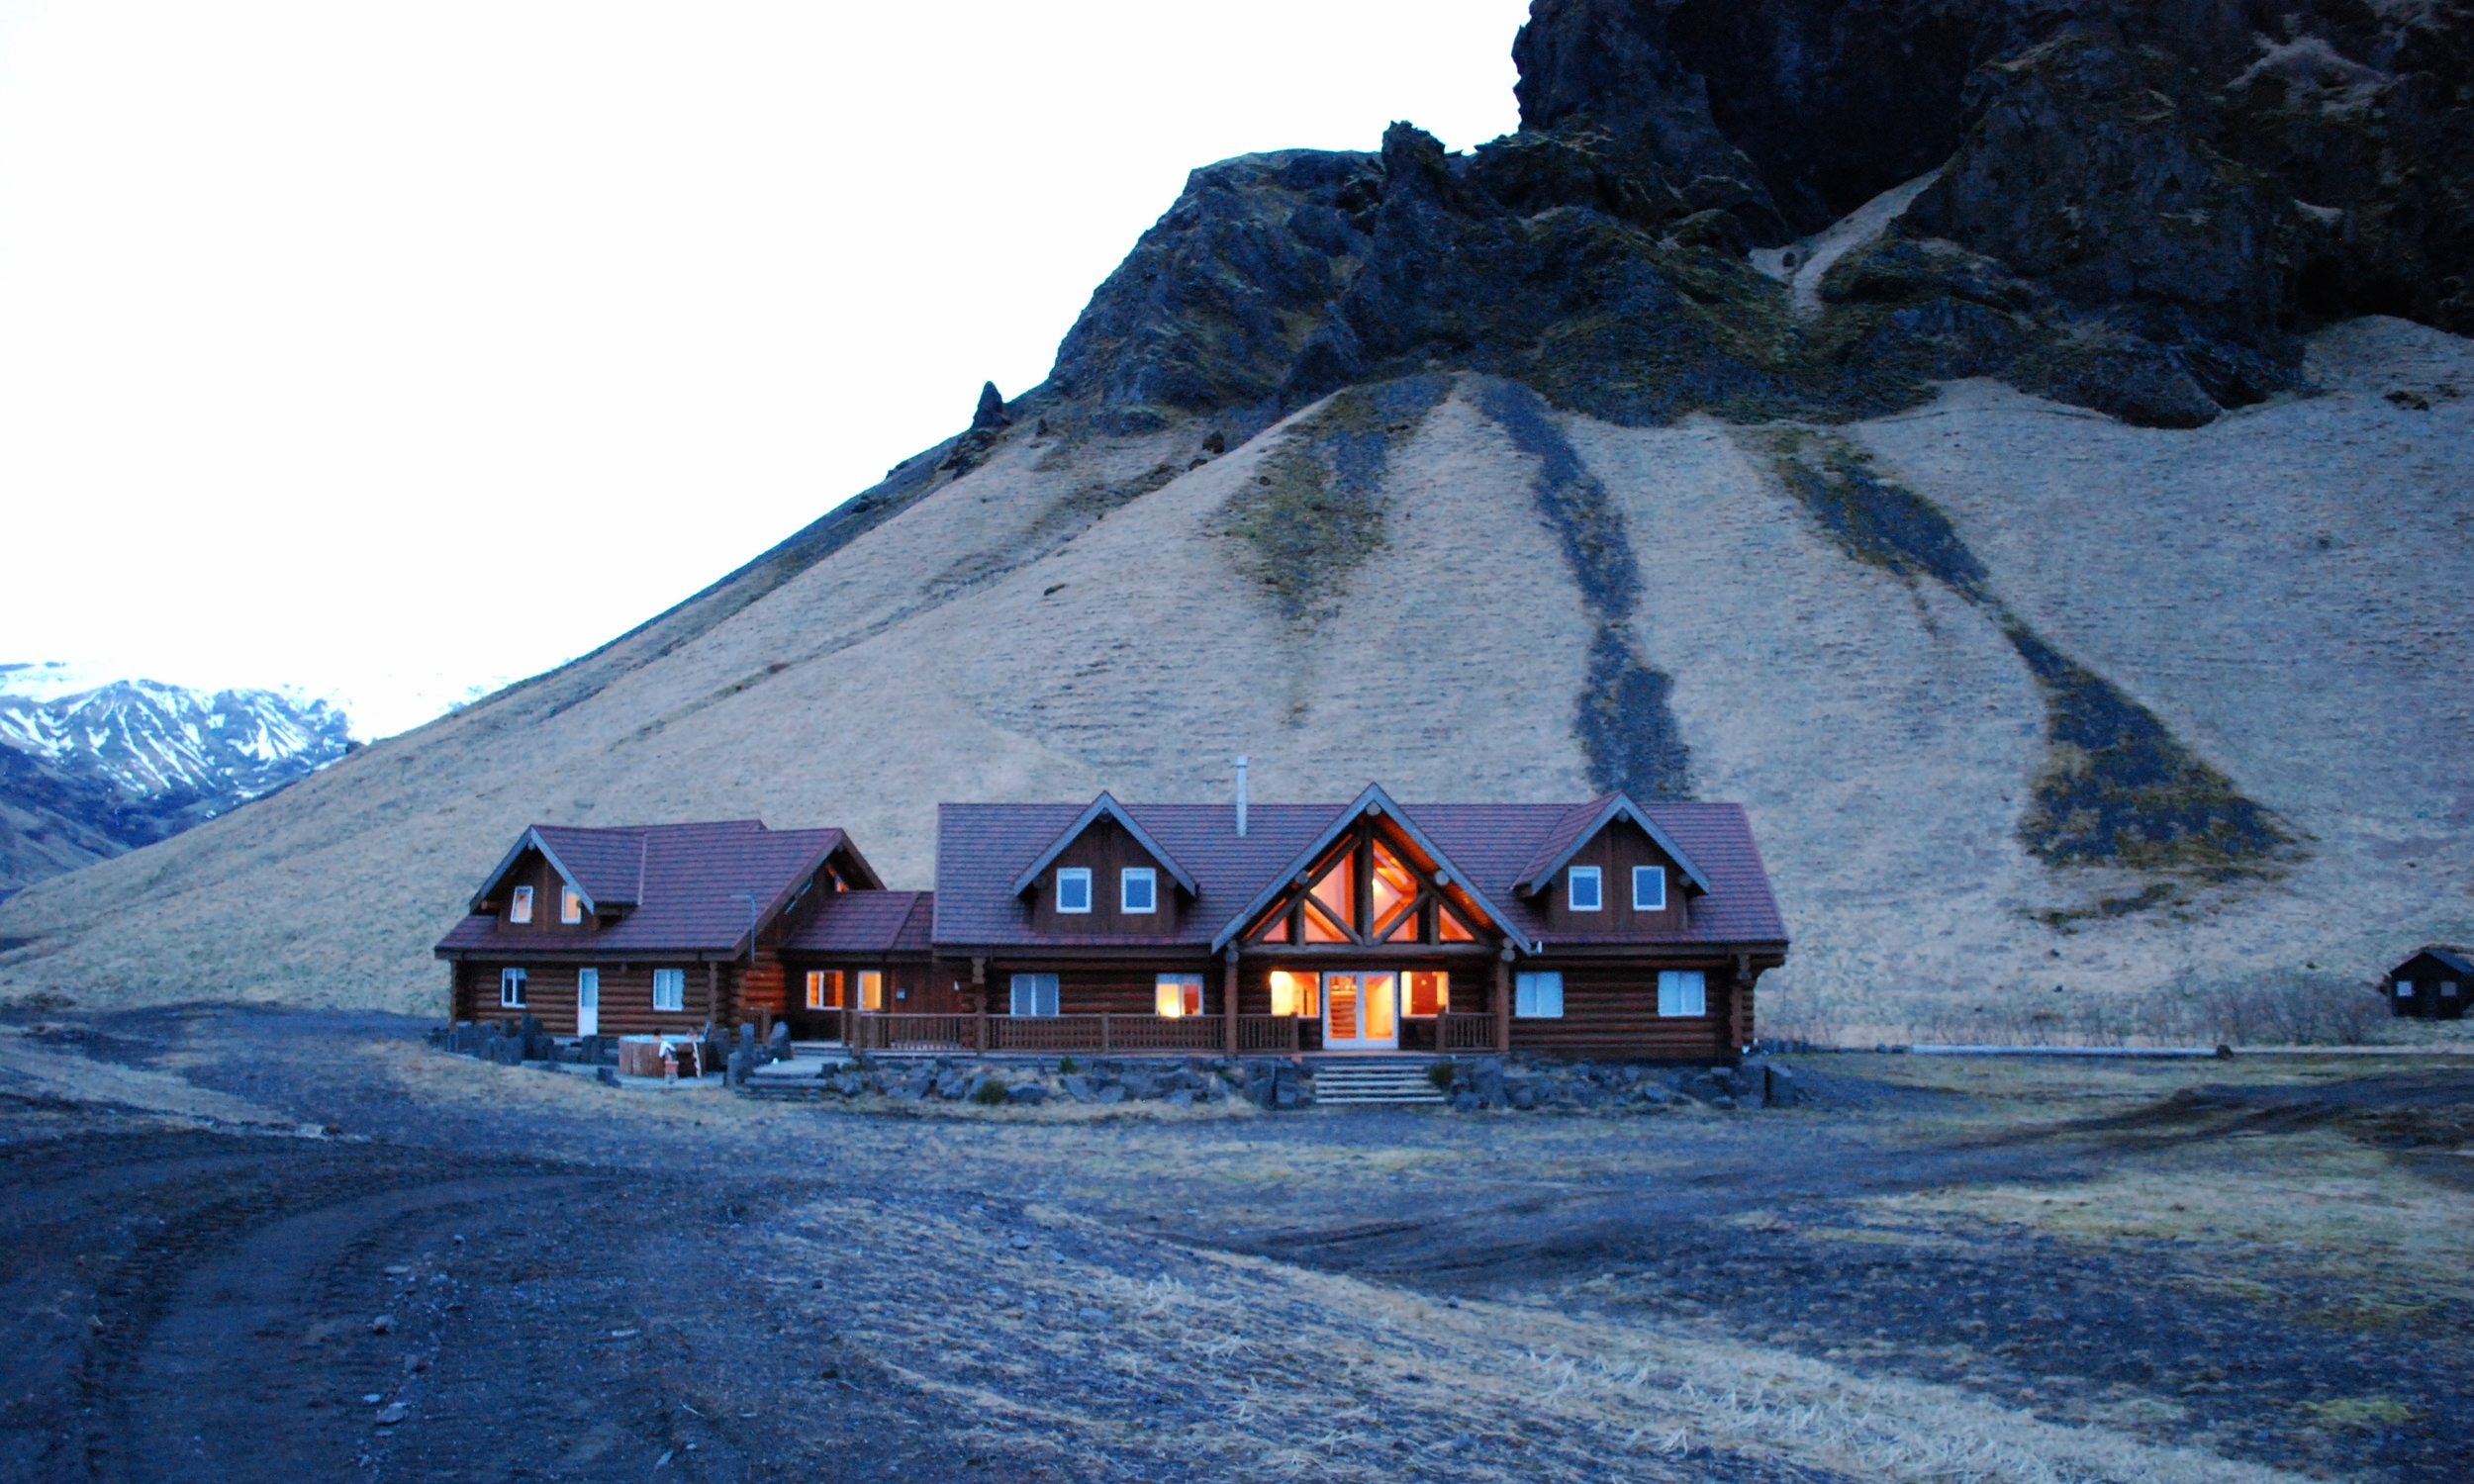 Log cabins in Iceland. We didn't ski but I'm sure log cabins in ski resorts are just as cute?